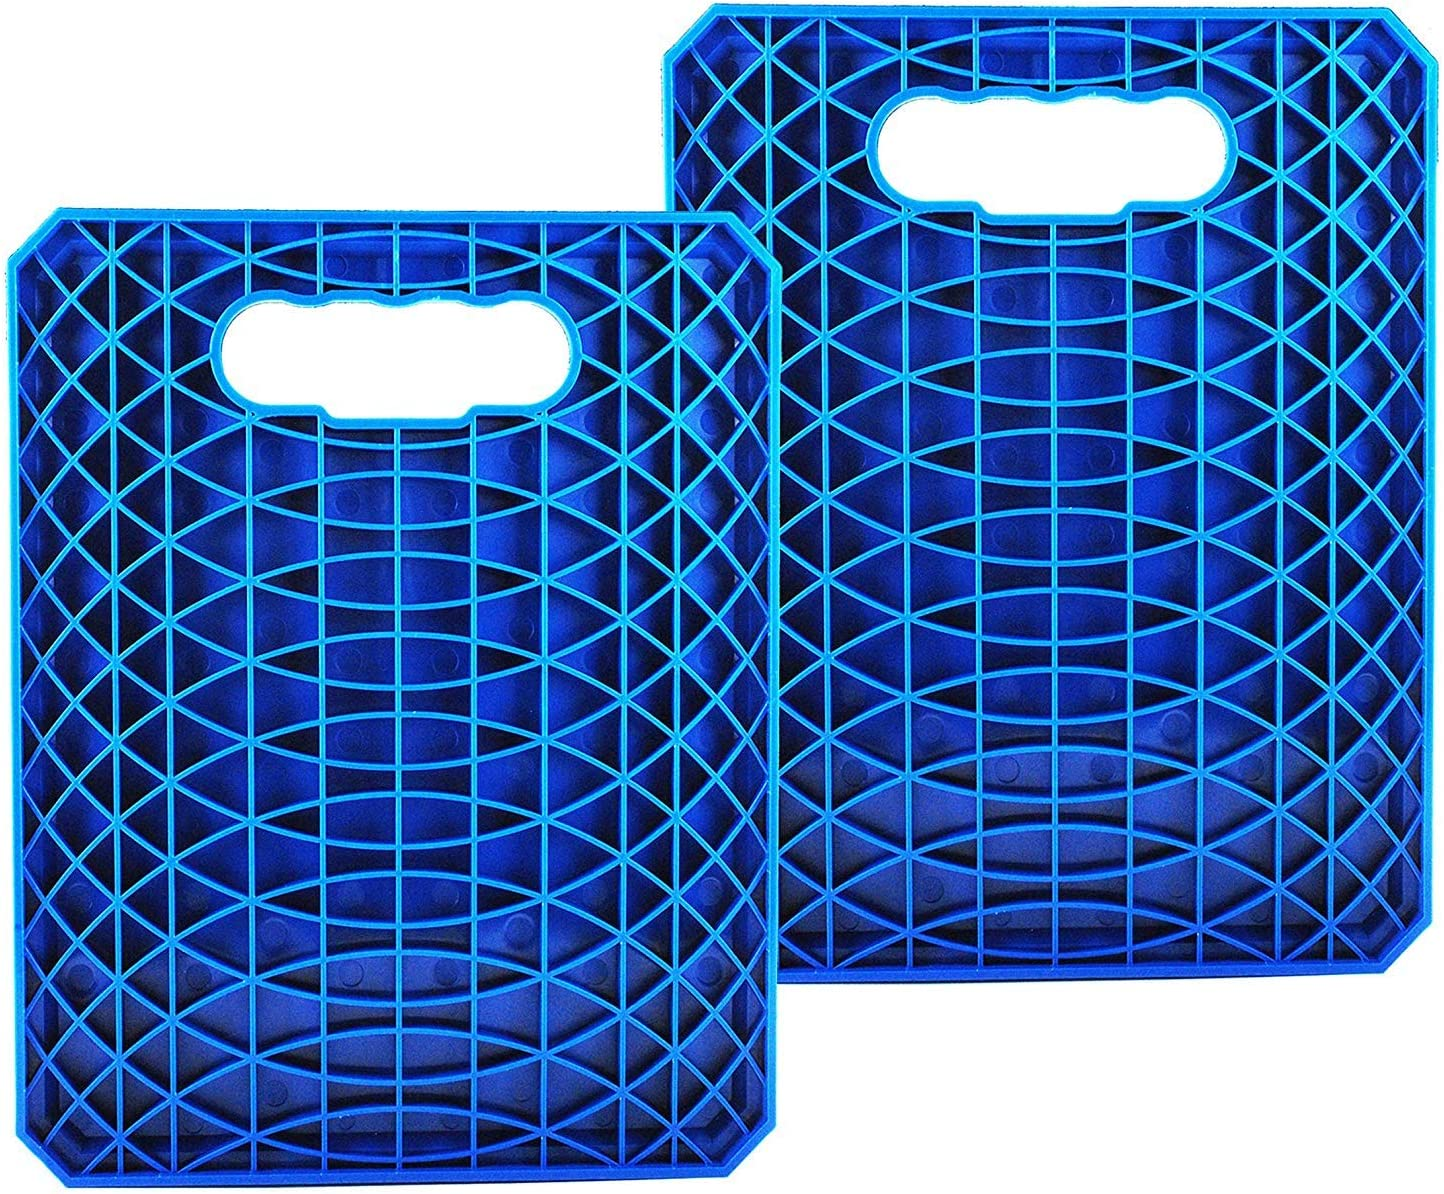 Wadoy Large RV Direct store Stabilizer Jack Store Leveling Pads Camper Blocks for